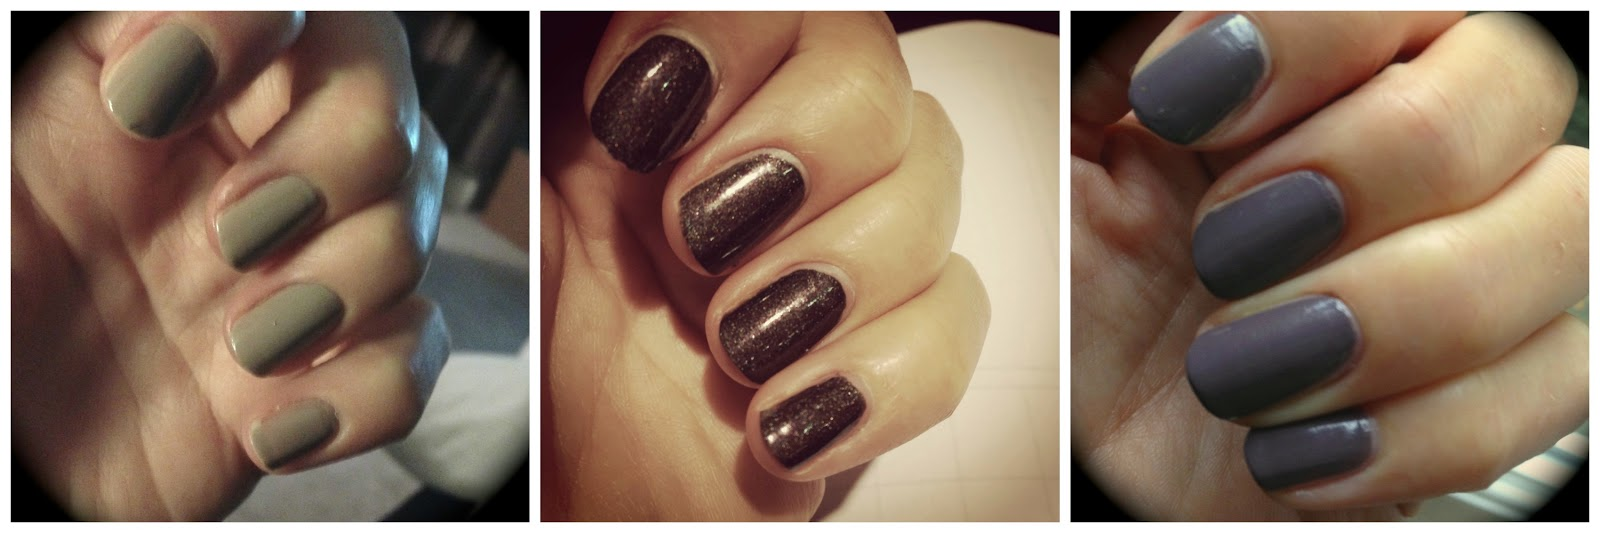 OPI My Private Jet Revlon Mischievous Revlon Smoky Canvas